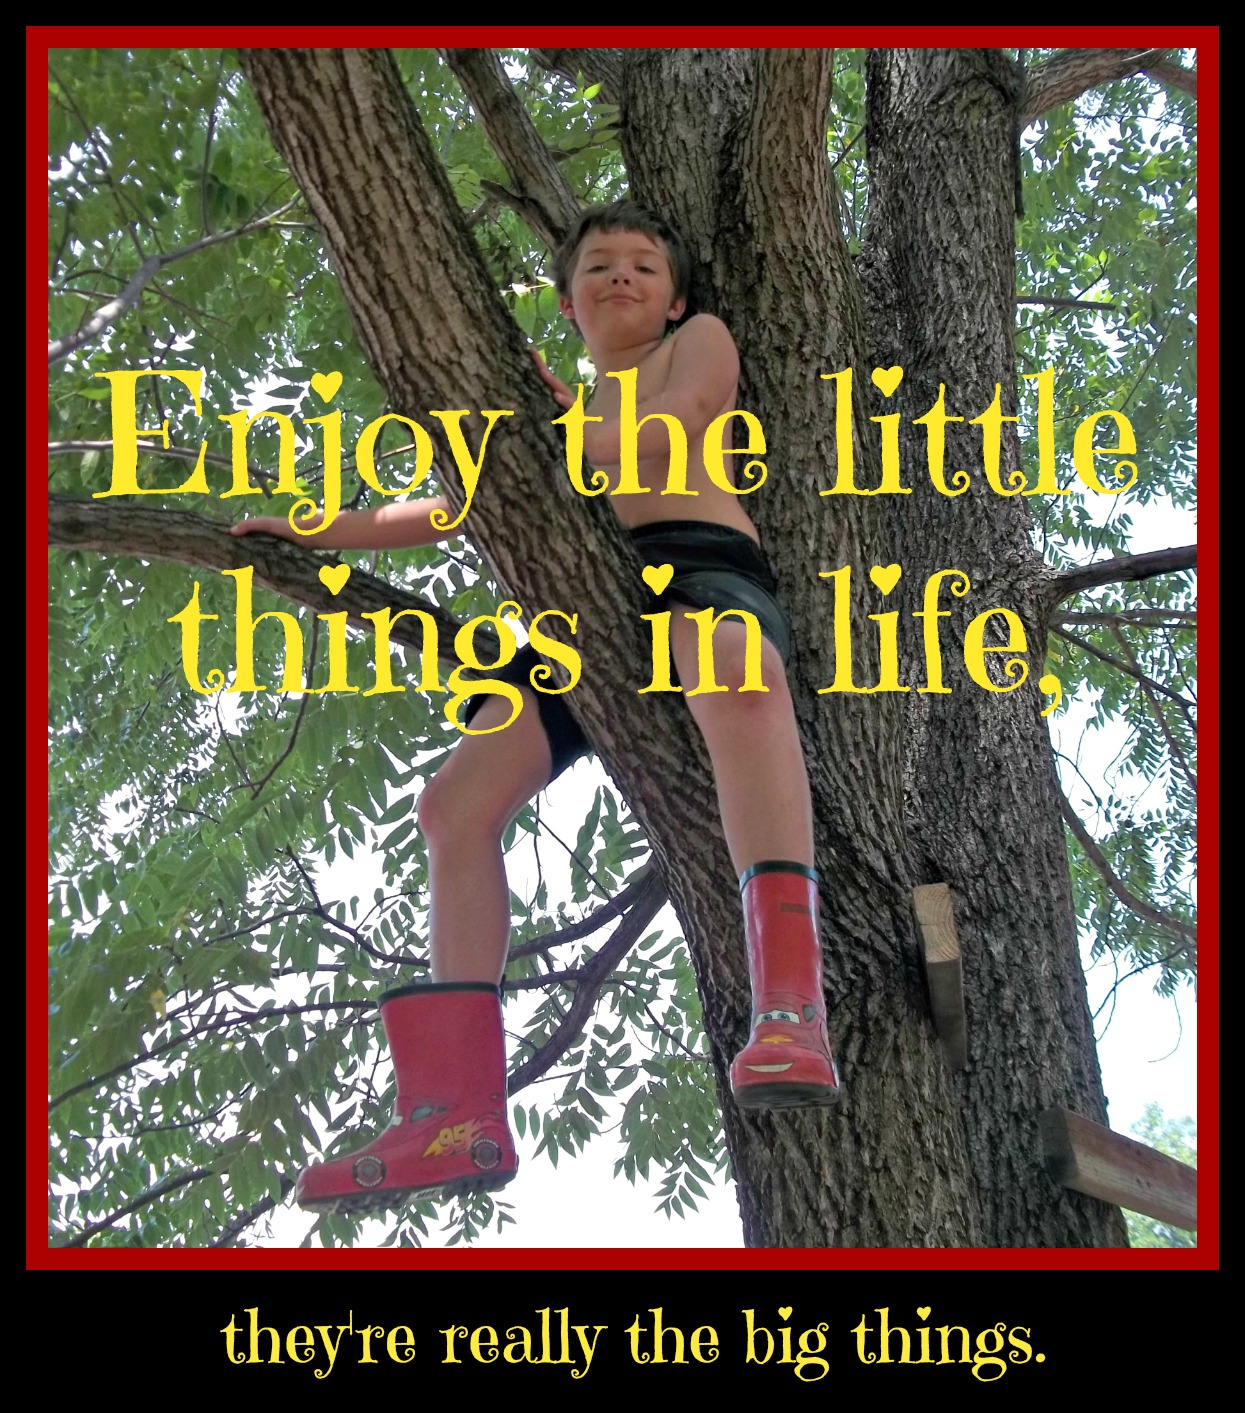 Country Life Quotes And Sayings Creative Country Sayings Inspirational Quotes Enjoy The Little